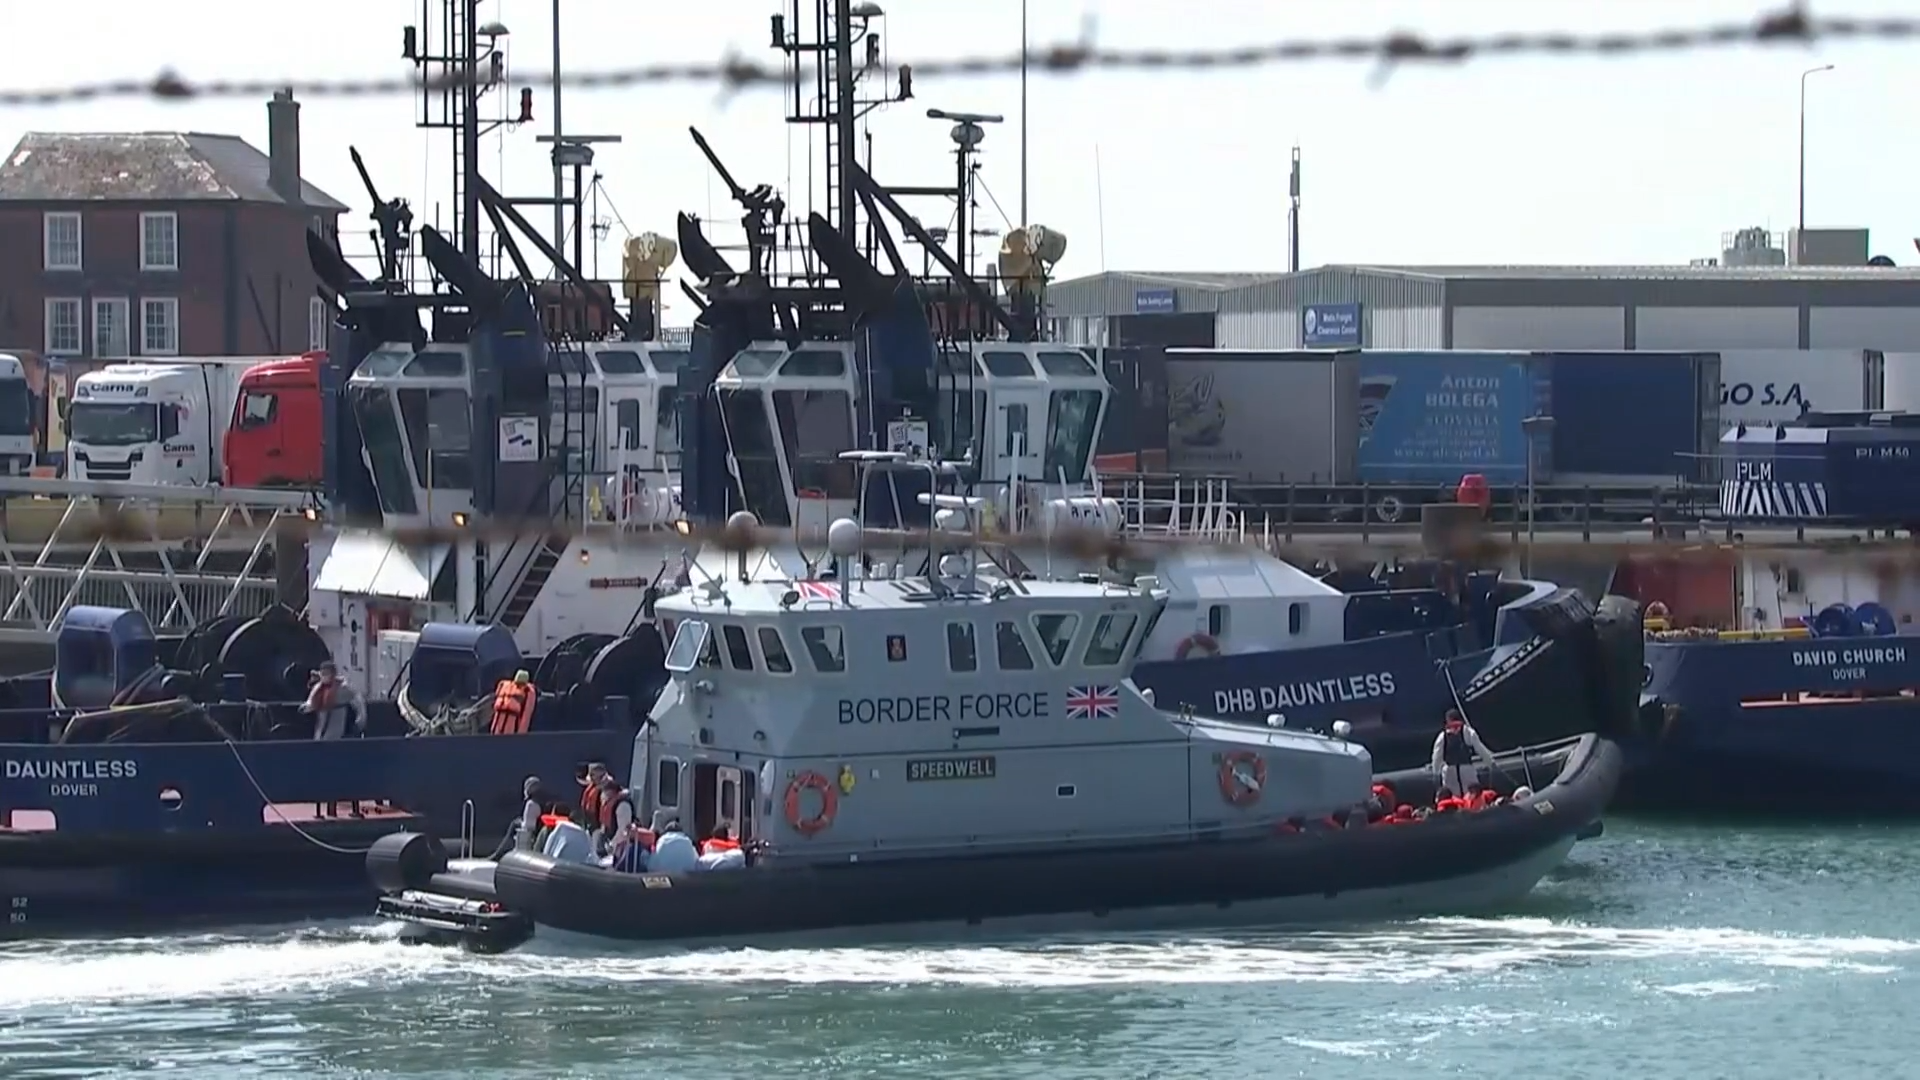 Lawyers warn plans to use navy to tackle migrant crossings could be unlawful - channel 4